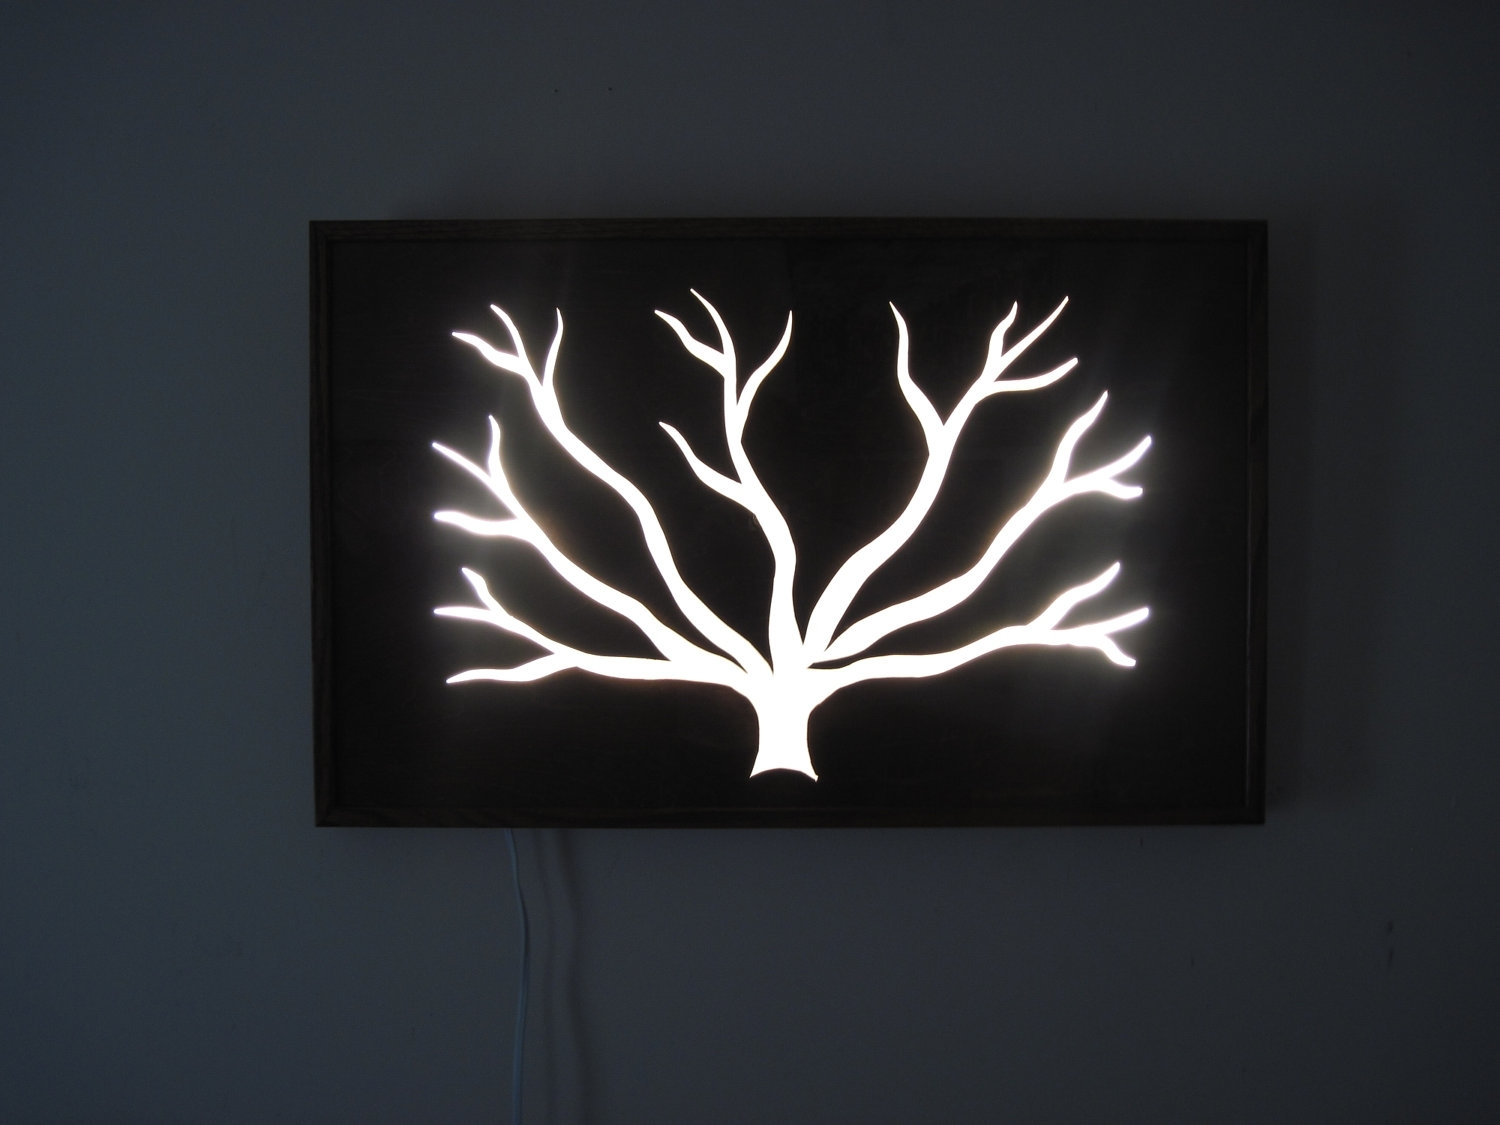 45 Lighted Wall Art, Metal Wall Art With Infused Color Changing Led Regarding Current Lighted Wall Art (View 19 of 20)